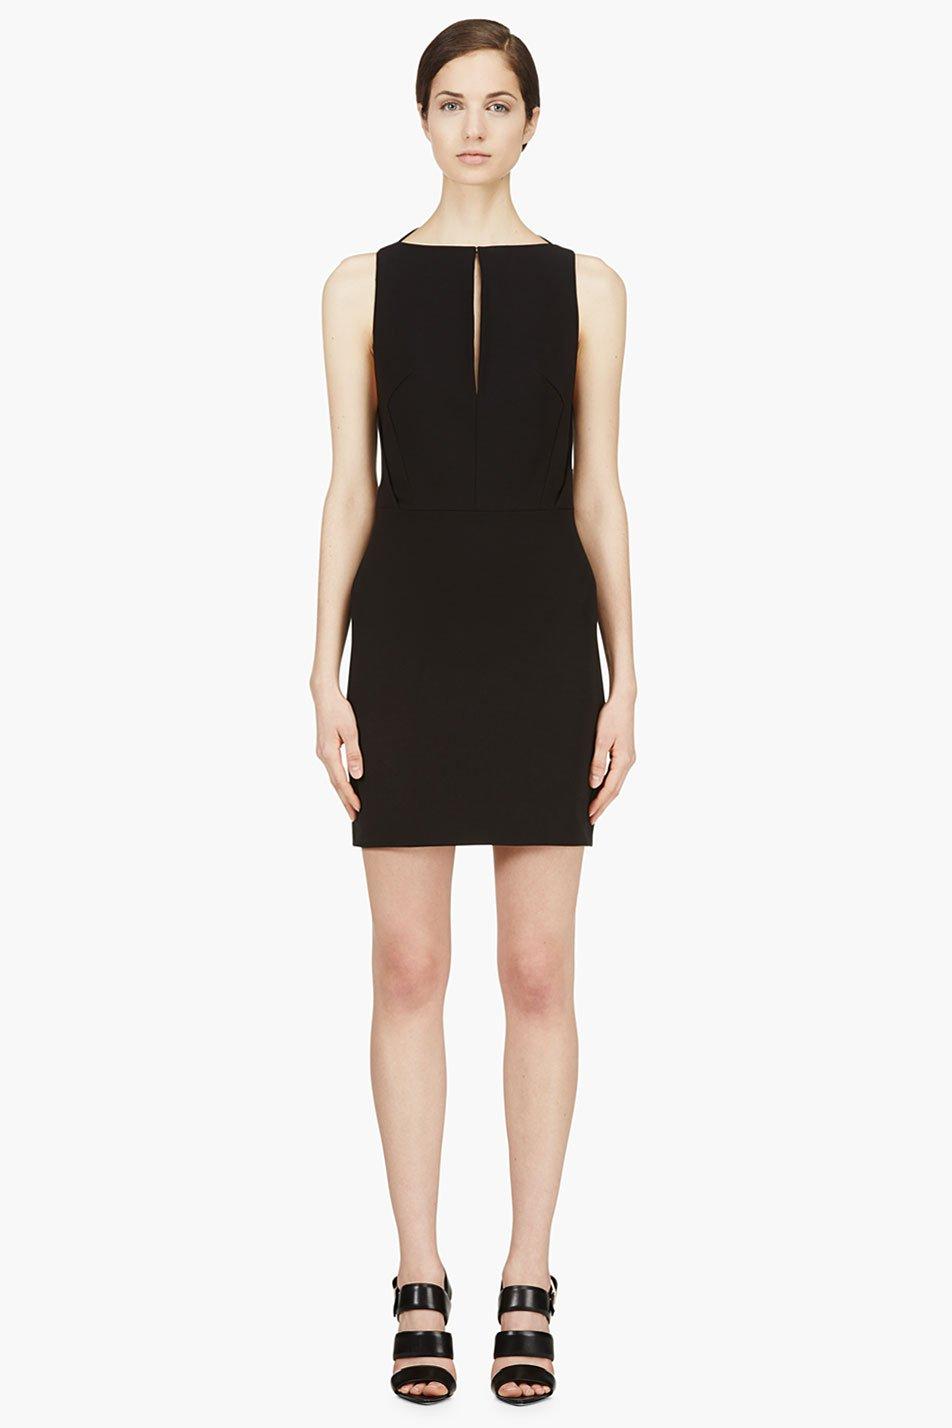 mugler black open back dress